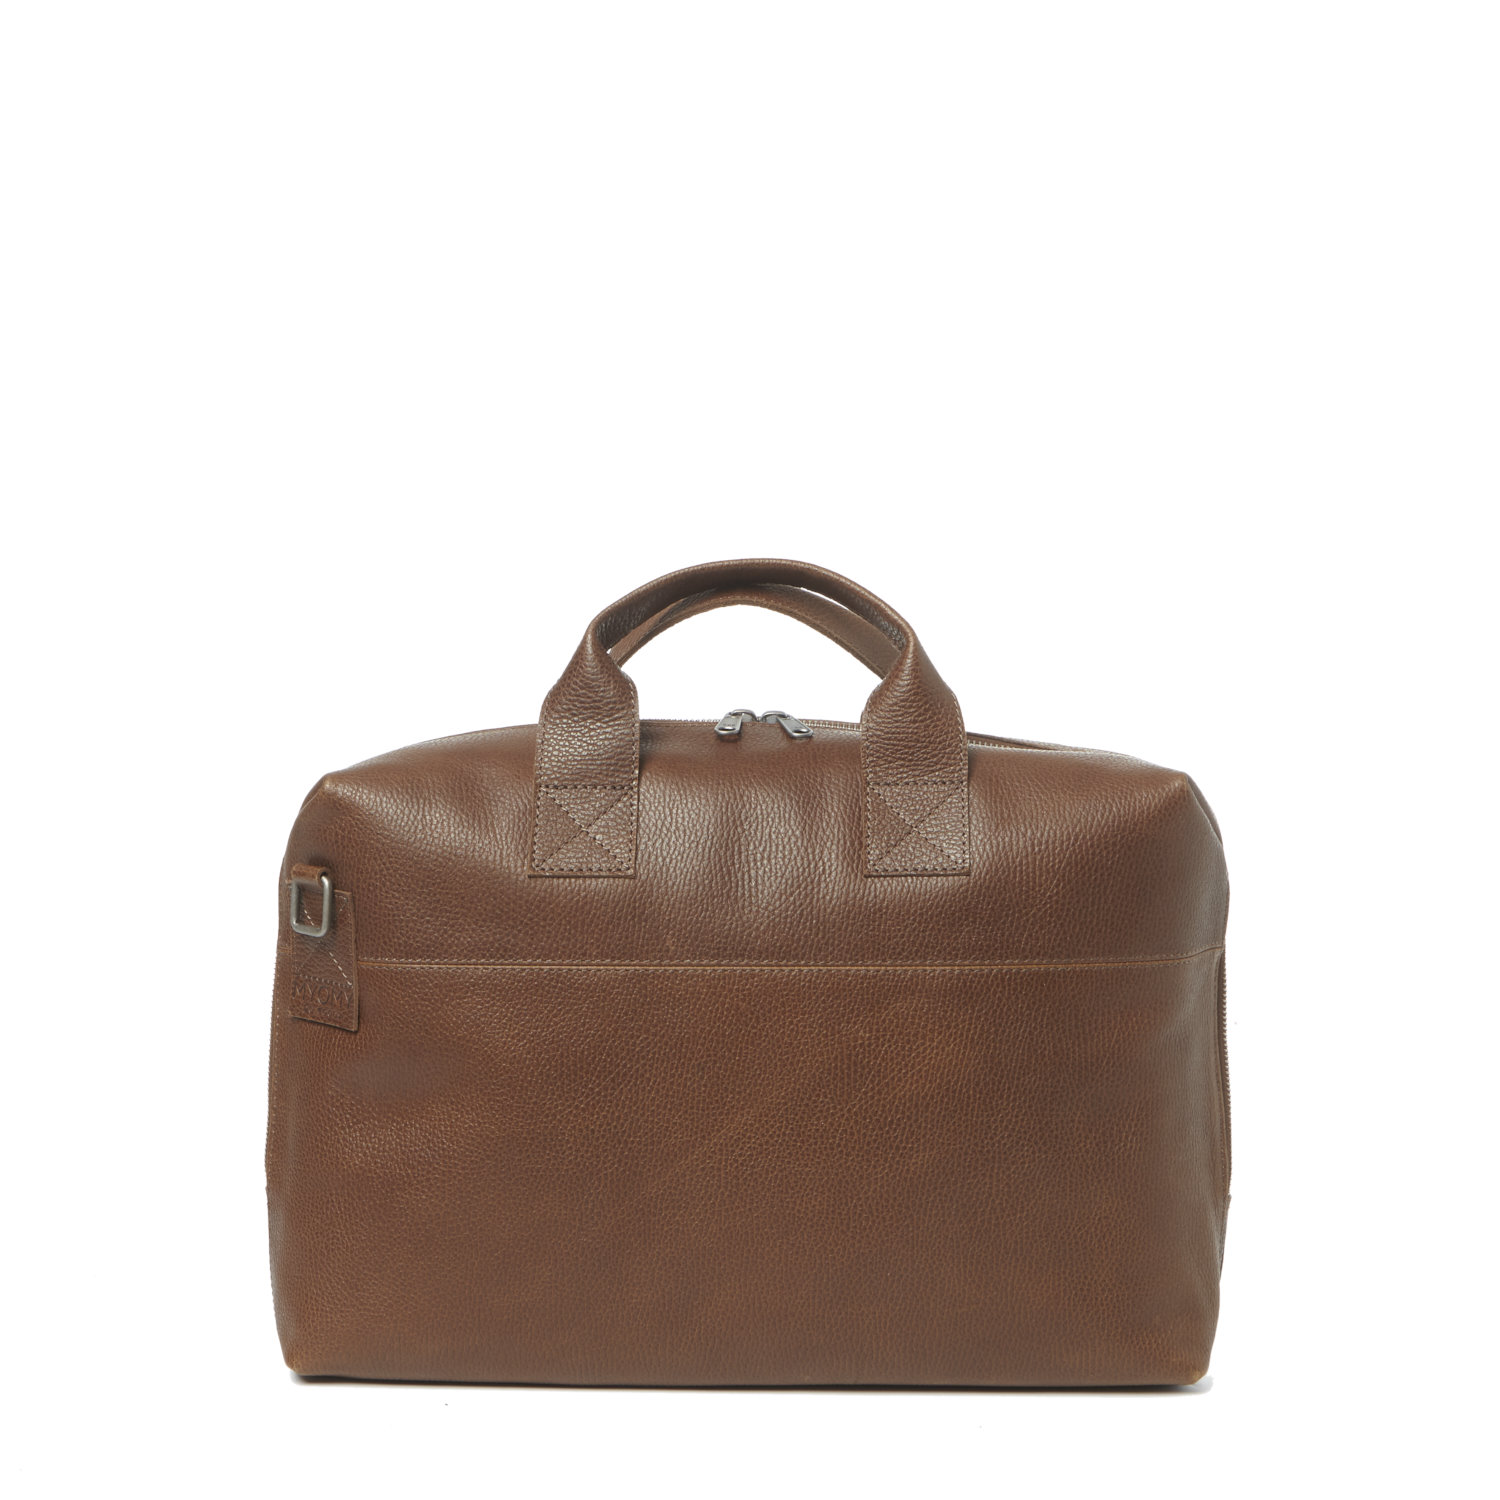 MY PHILIP BAG Business bag - rambler brandy